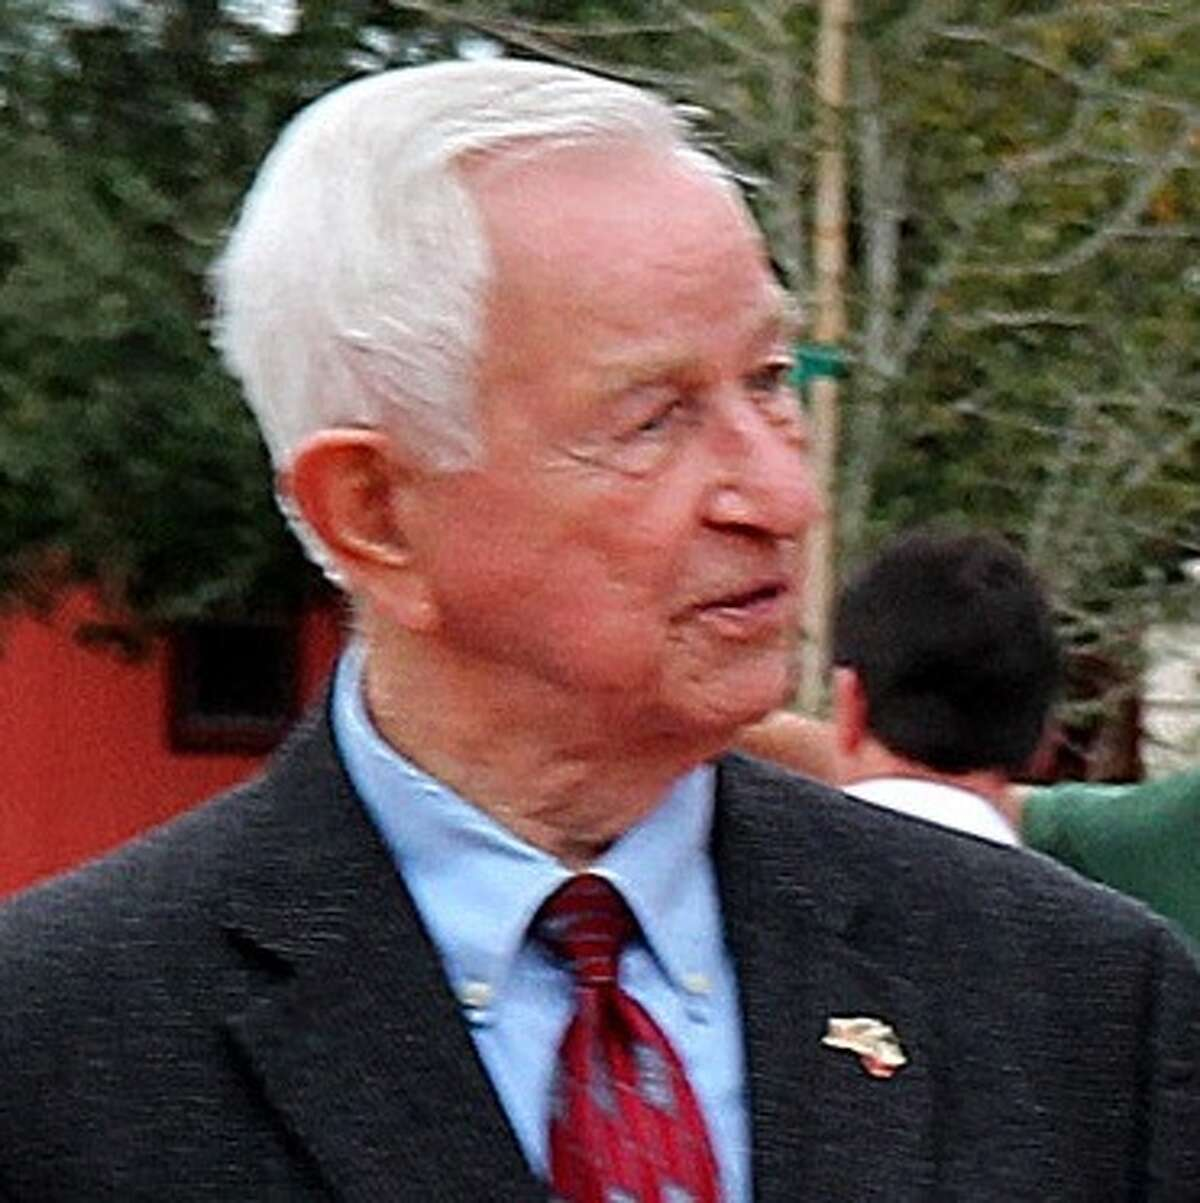 Longtime Pearland Mayor Tom Reid is in as runoff battle with Quentin Wiltz.